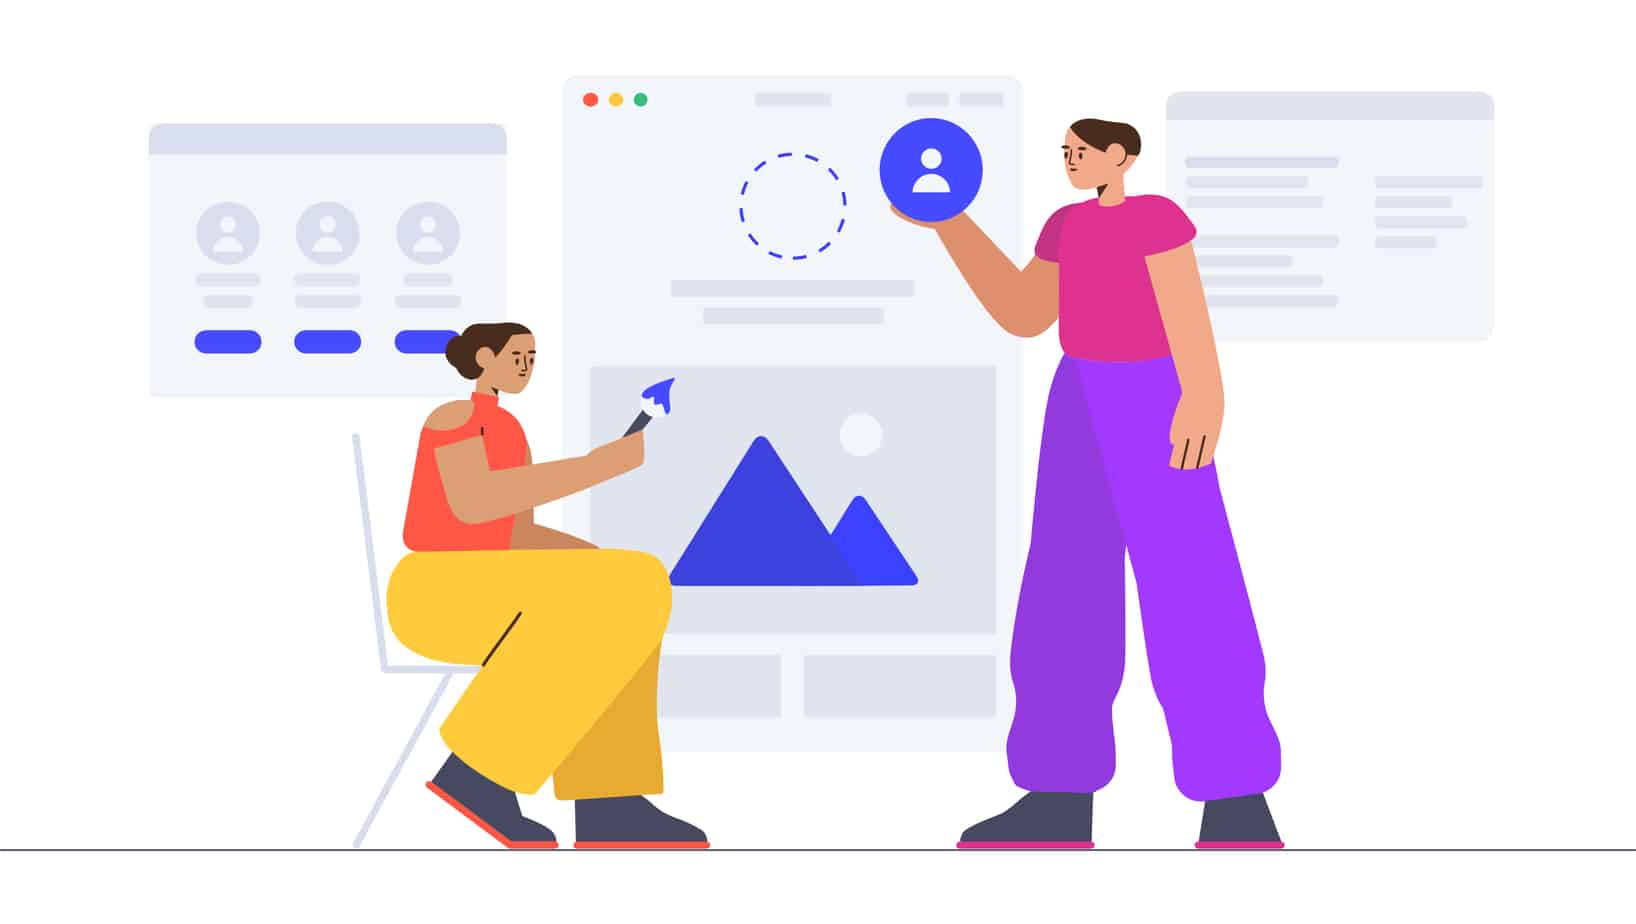 Guide to coupling app redesign with feature updates